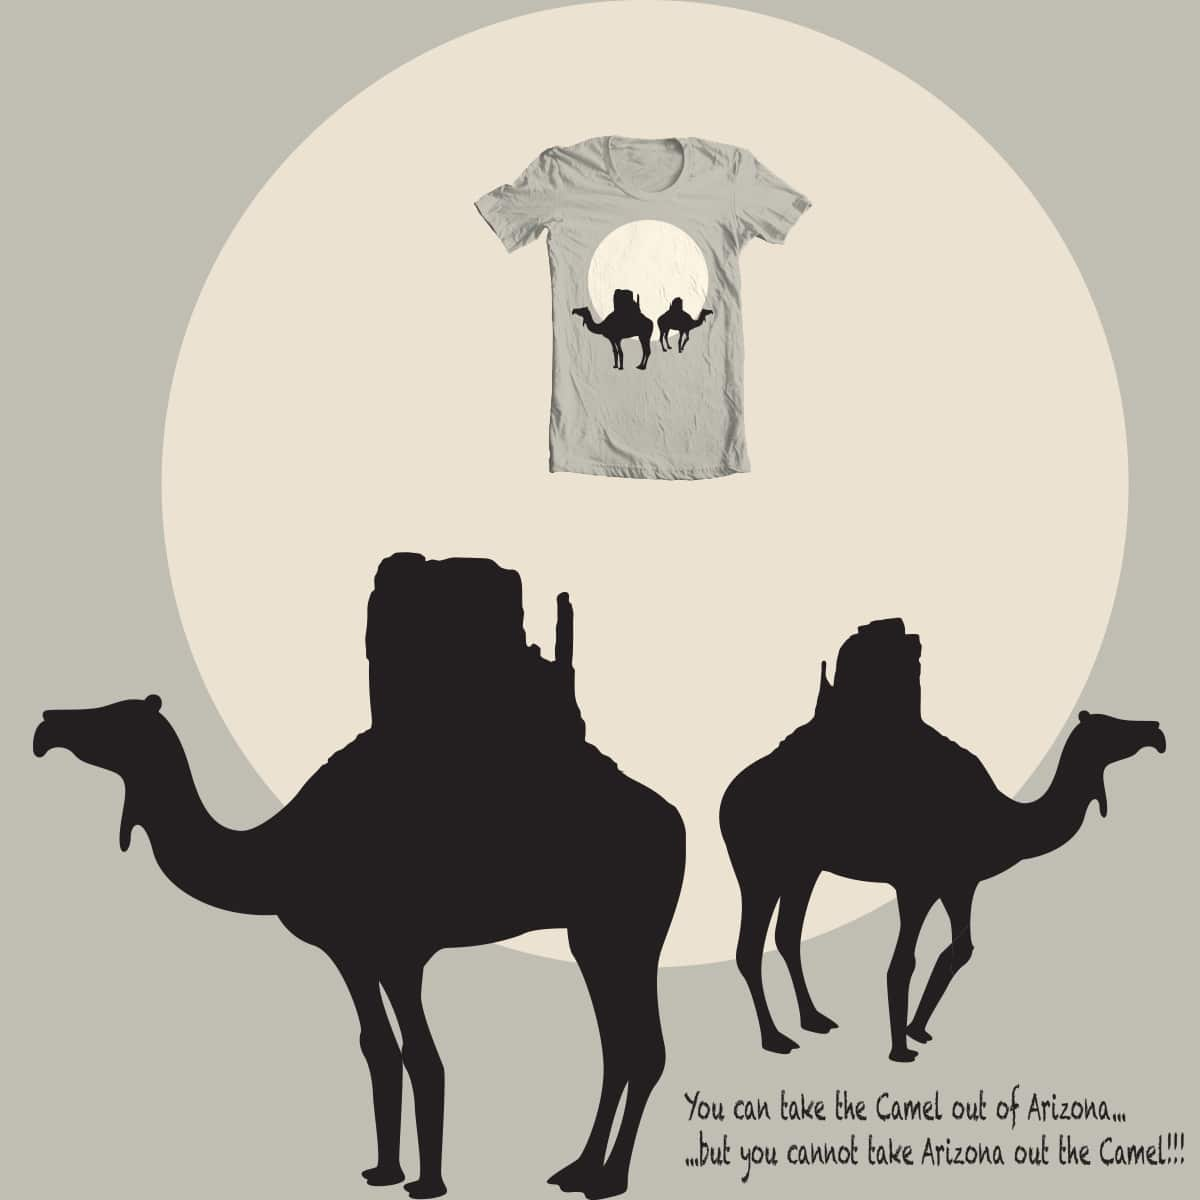 You can take the Camel out of Arizona... ...but you cannot take Arizona out the Camel!!! by Flower Bean on Threadless